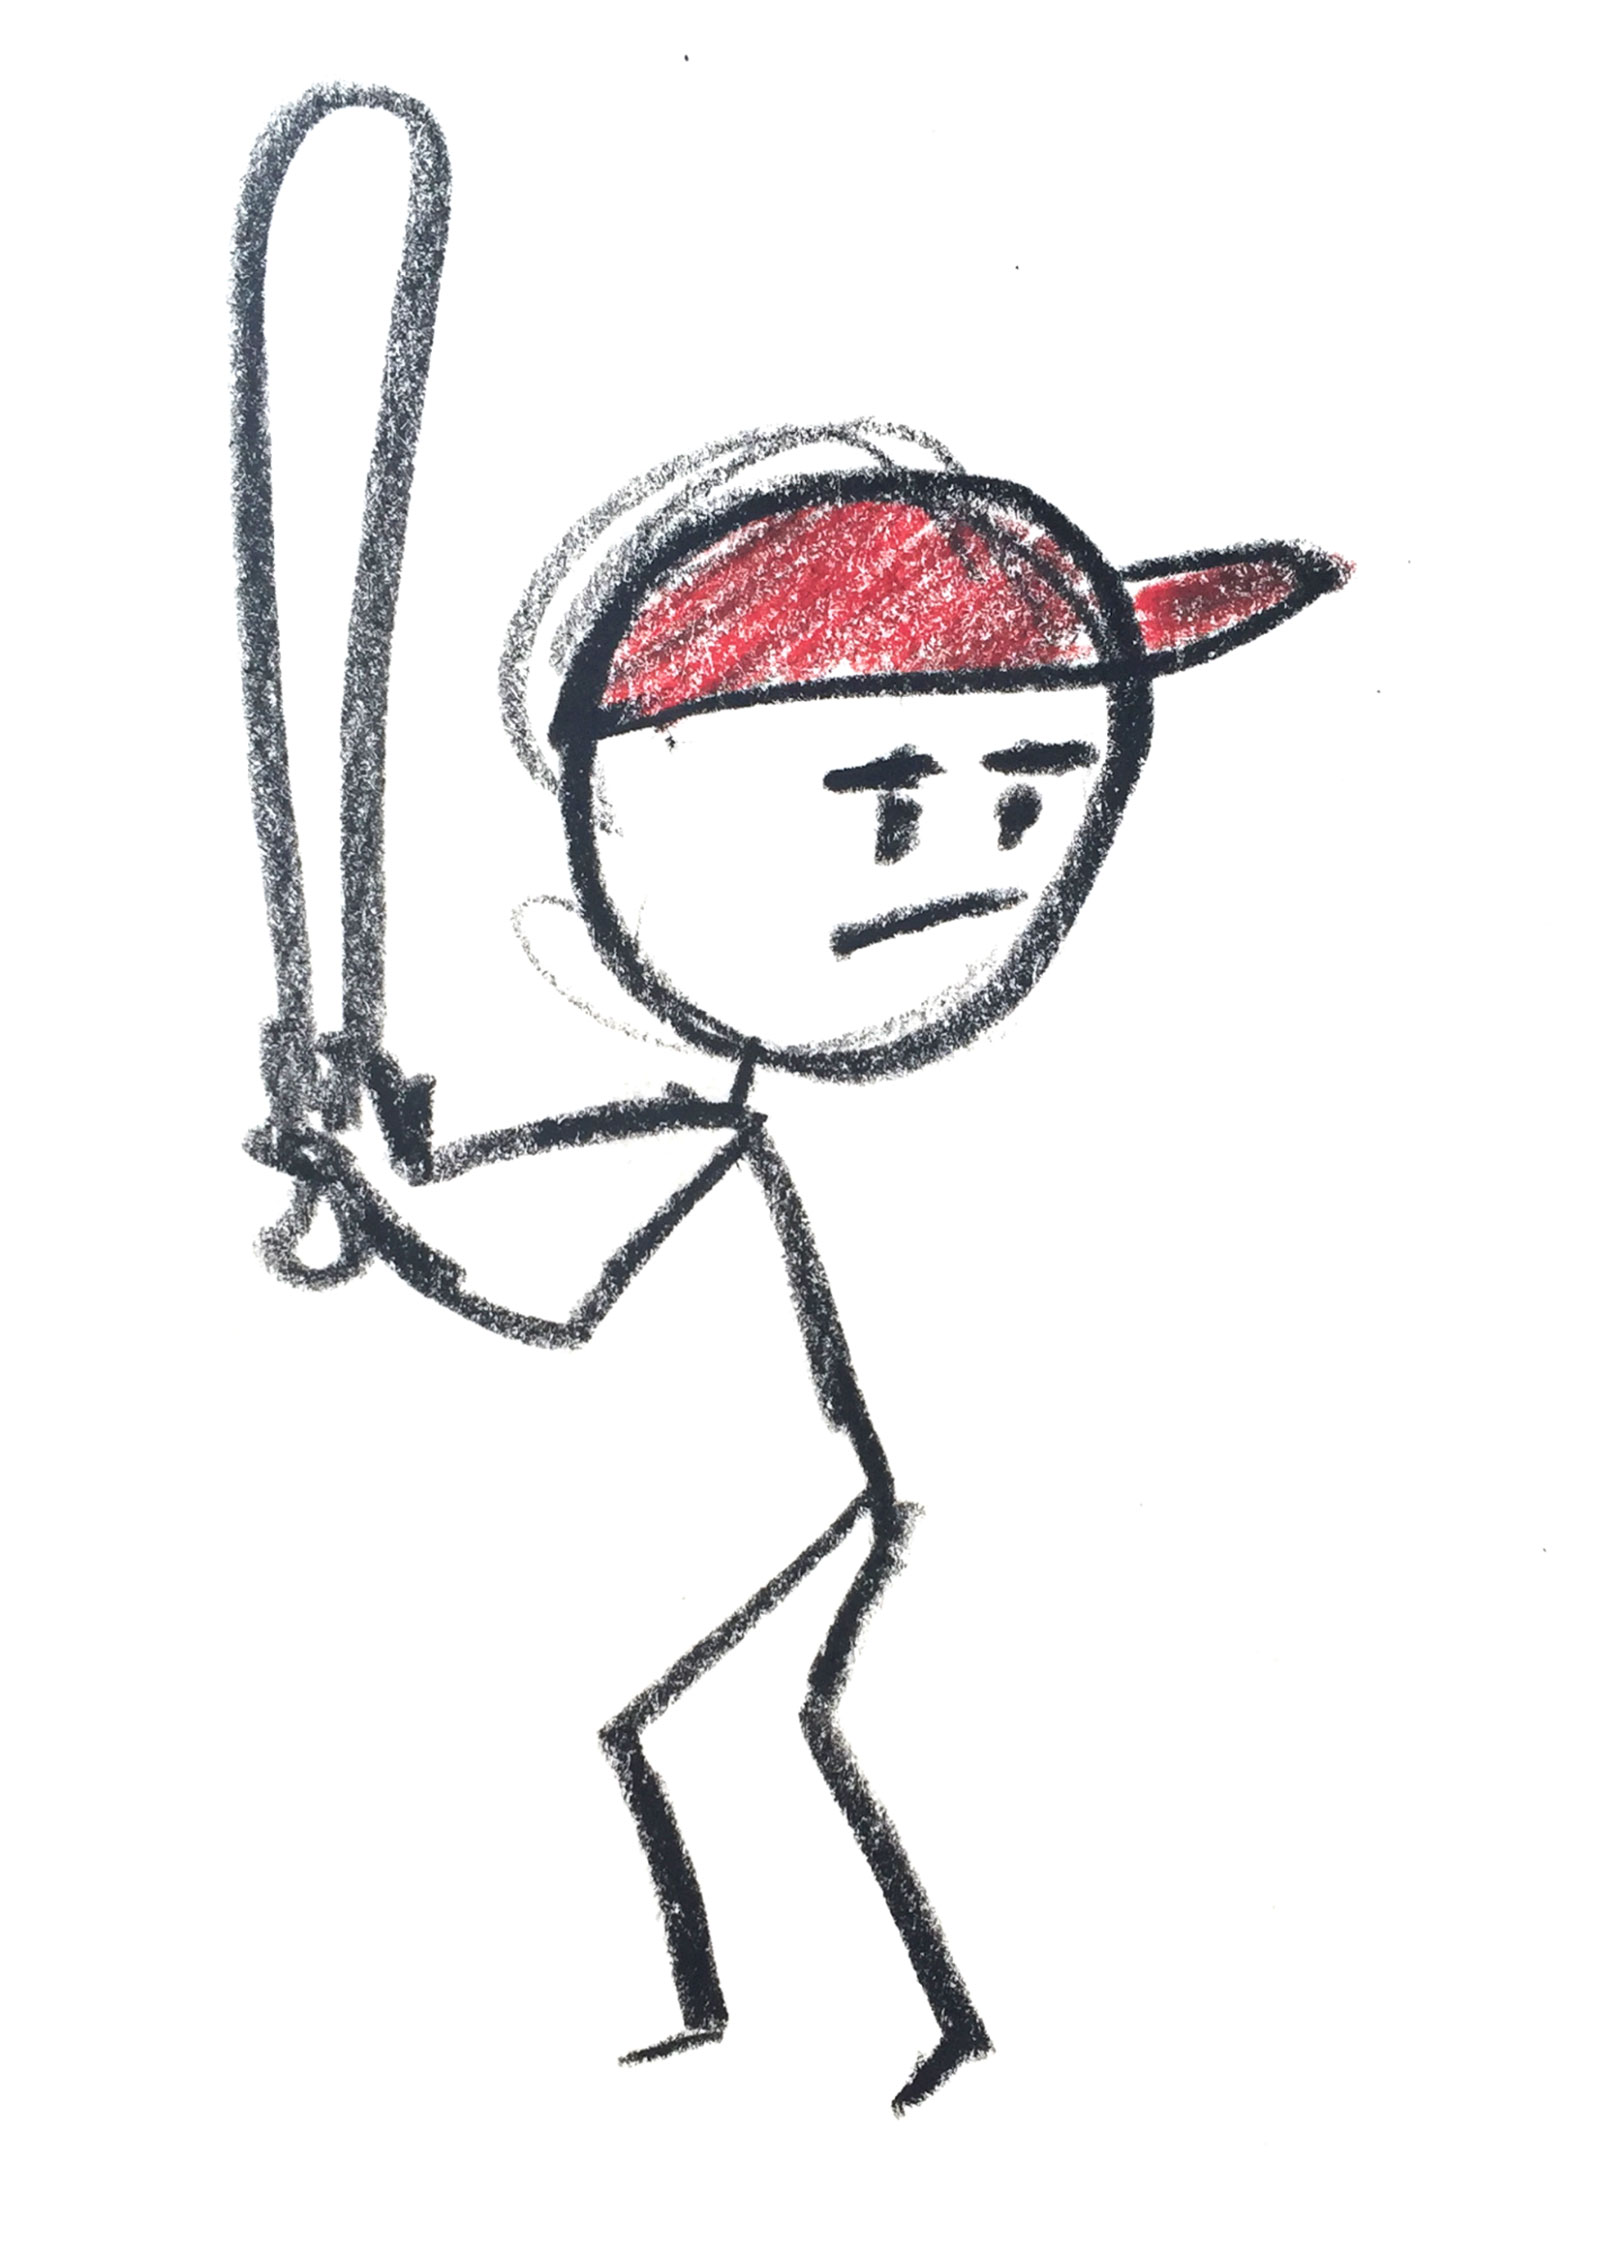 Stick figure with a baseball bat.